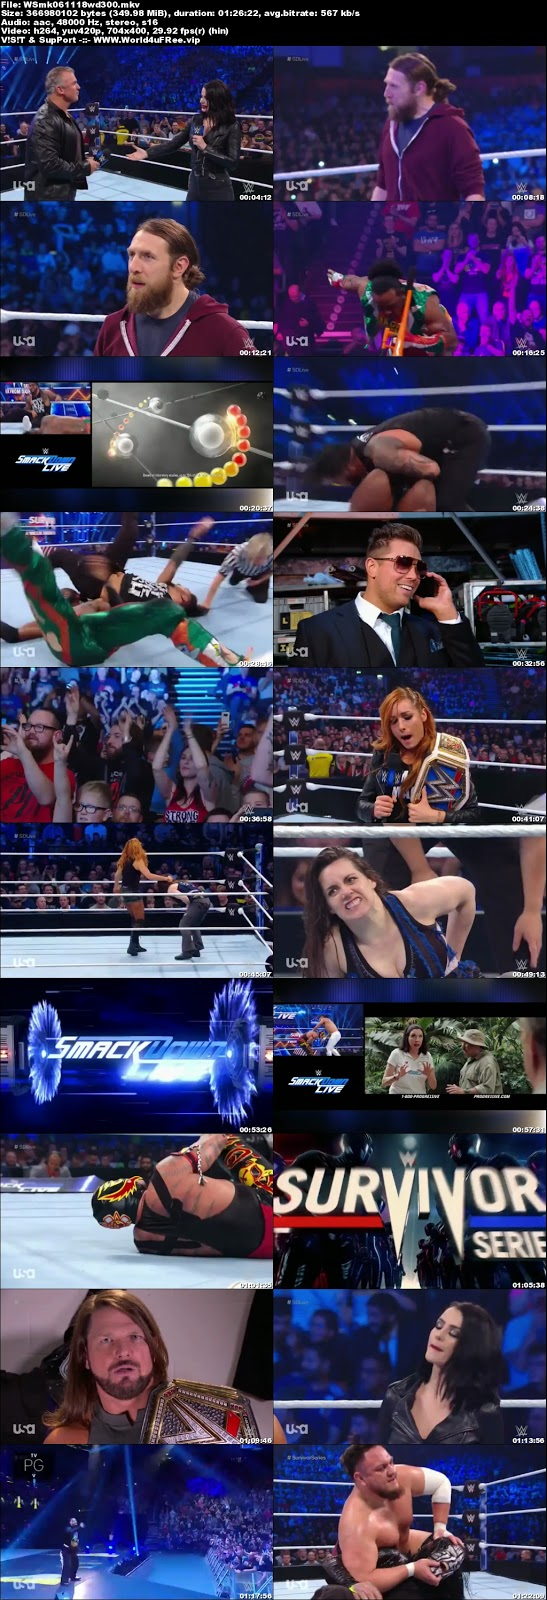 WWE Smackdown Live 06 NOVEMBER 2018 HDTV 480p 350MB x264tv show wweWWE Smackdown Live 30 OCTOBER 2018 HDTV 480p 300MB x264 compressed small size free download or watch online at world4ufree.fun